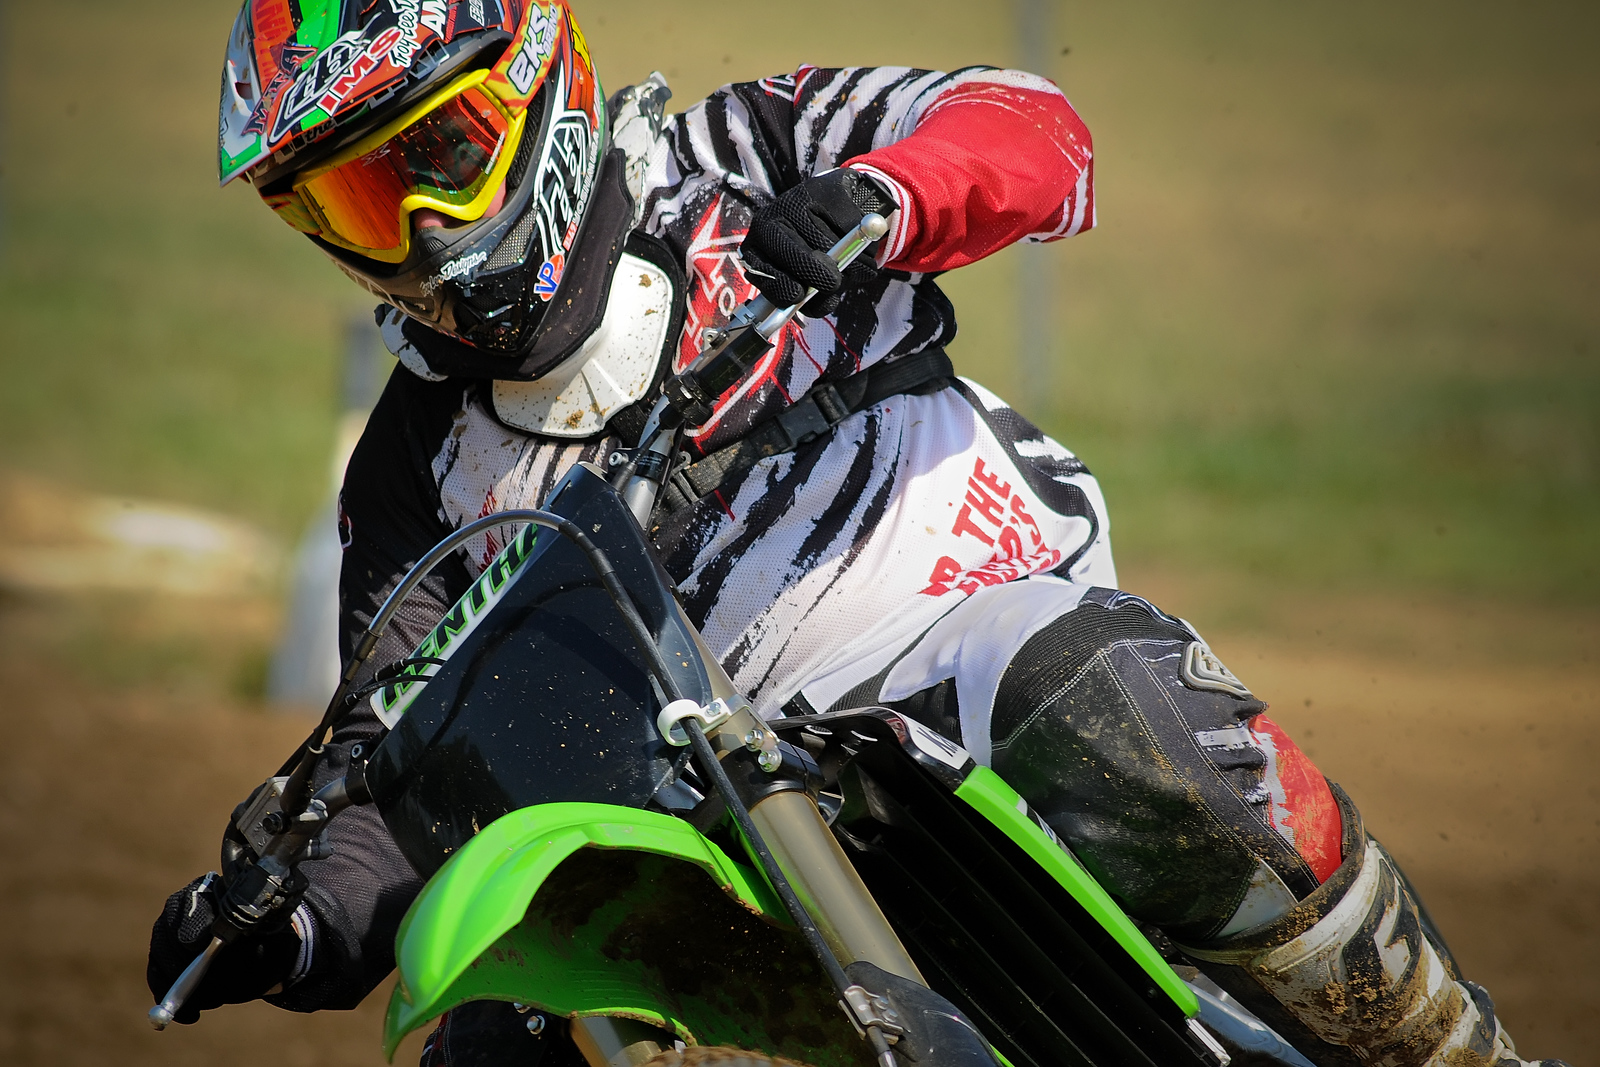 June 24th,  Glenn found some info that they had the debut of the 2011 Kawasaki 250F at Budds......So I decided that was worth taking a little vacation day and spending it at the track.  Pretty cool to see how the magazines and all shoot these debuts!